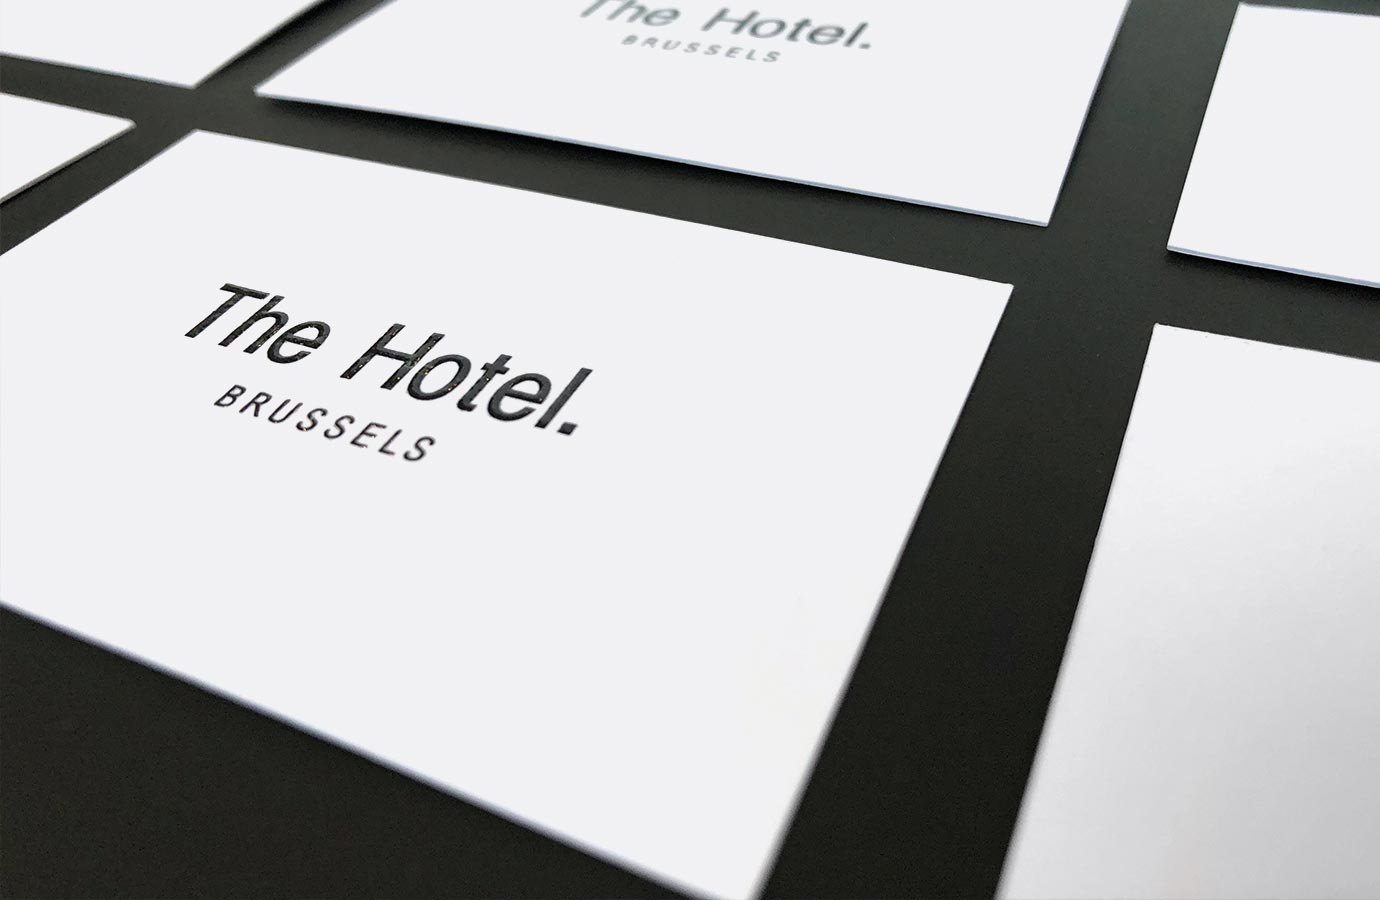 Identité, cartes d'affaires The Hotel